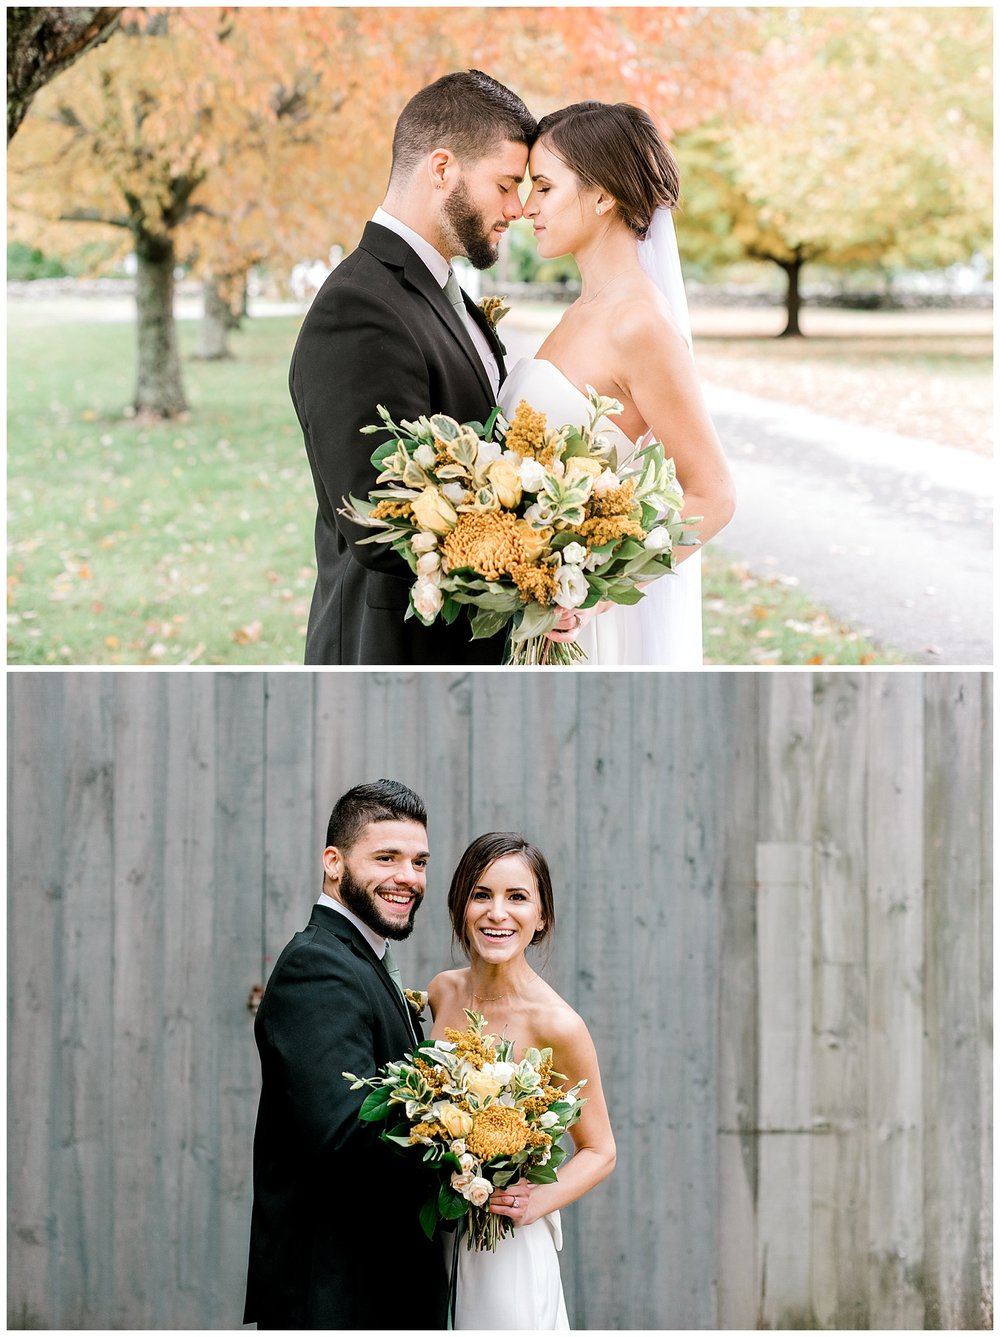 pompositticut-farm-fall-wedding-photography-hudson-massachusetts-photo-28.jpg